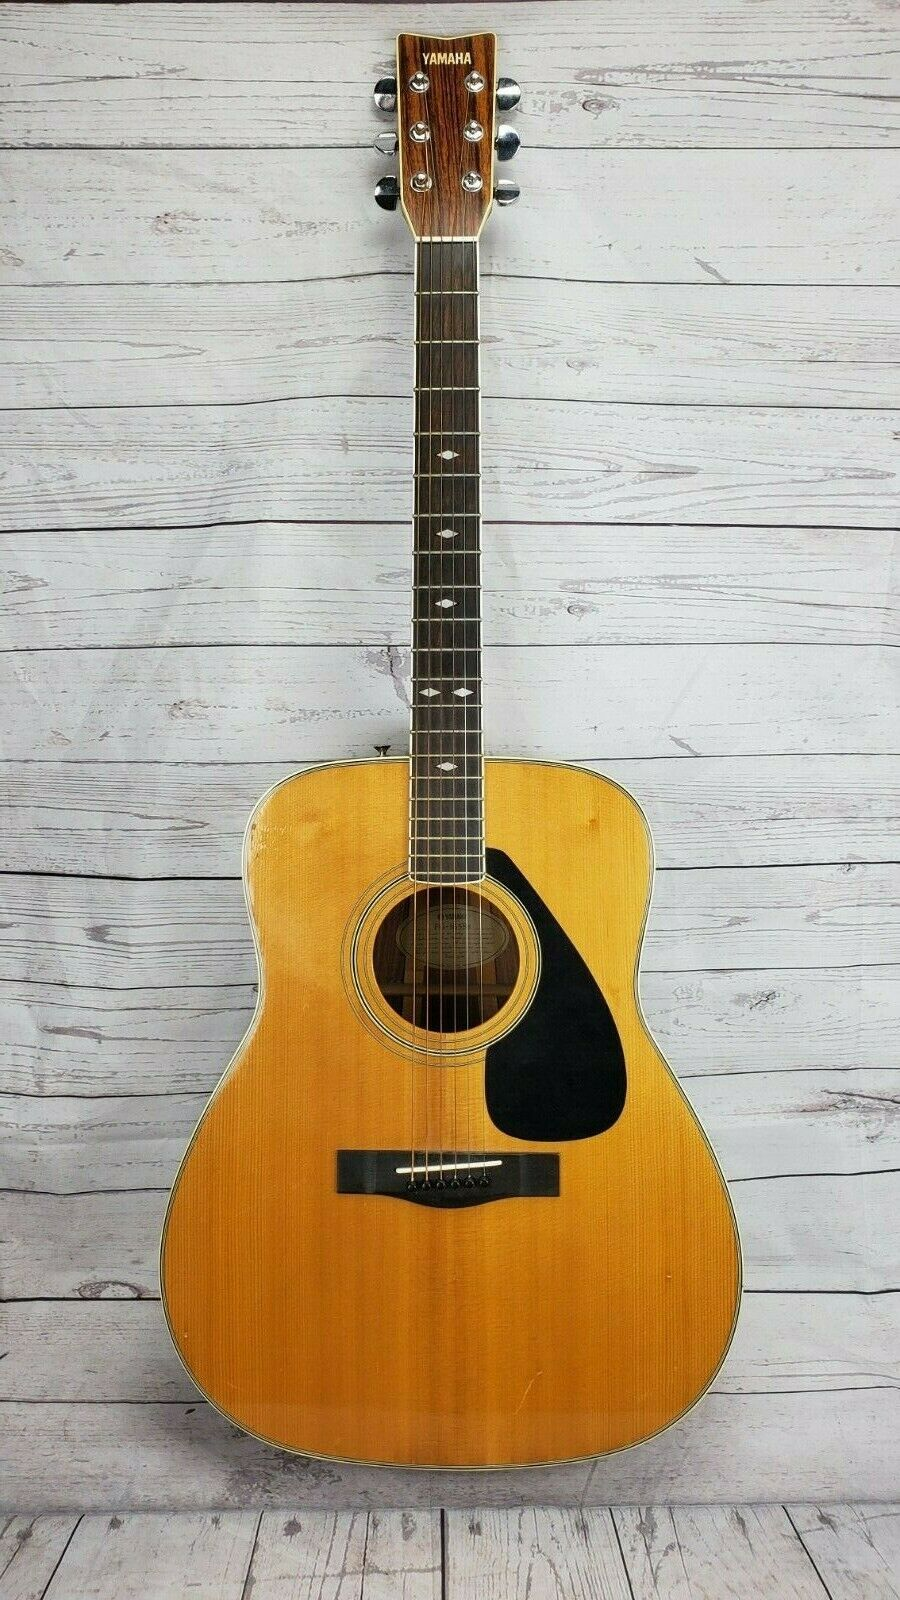 Pin By William Low On Guitar In 2020 Yamaha Acoustic Guitar Yamaha Acoustic Yamaha Fg